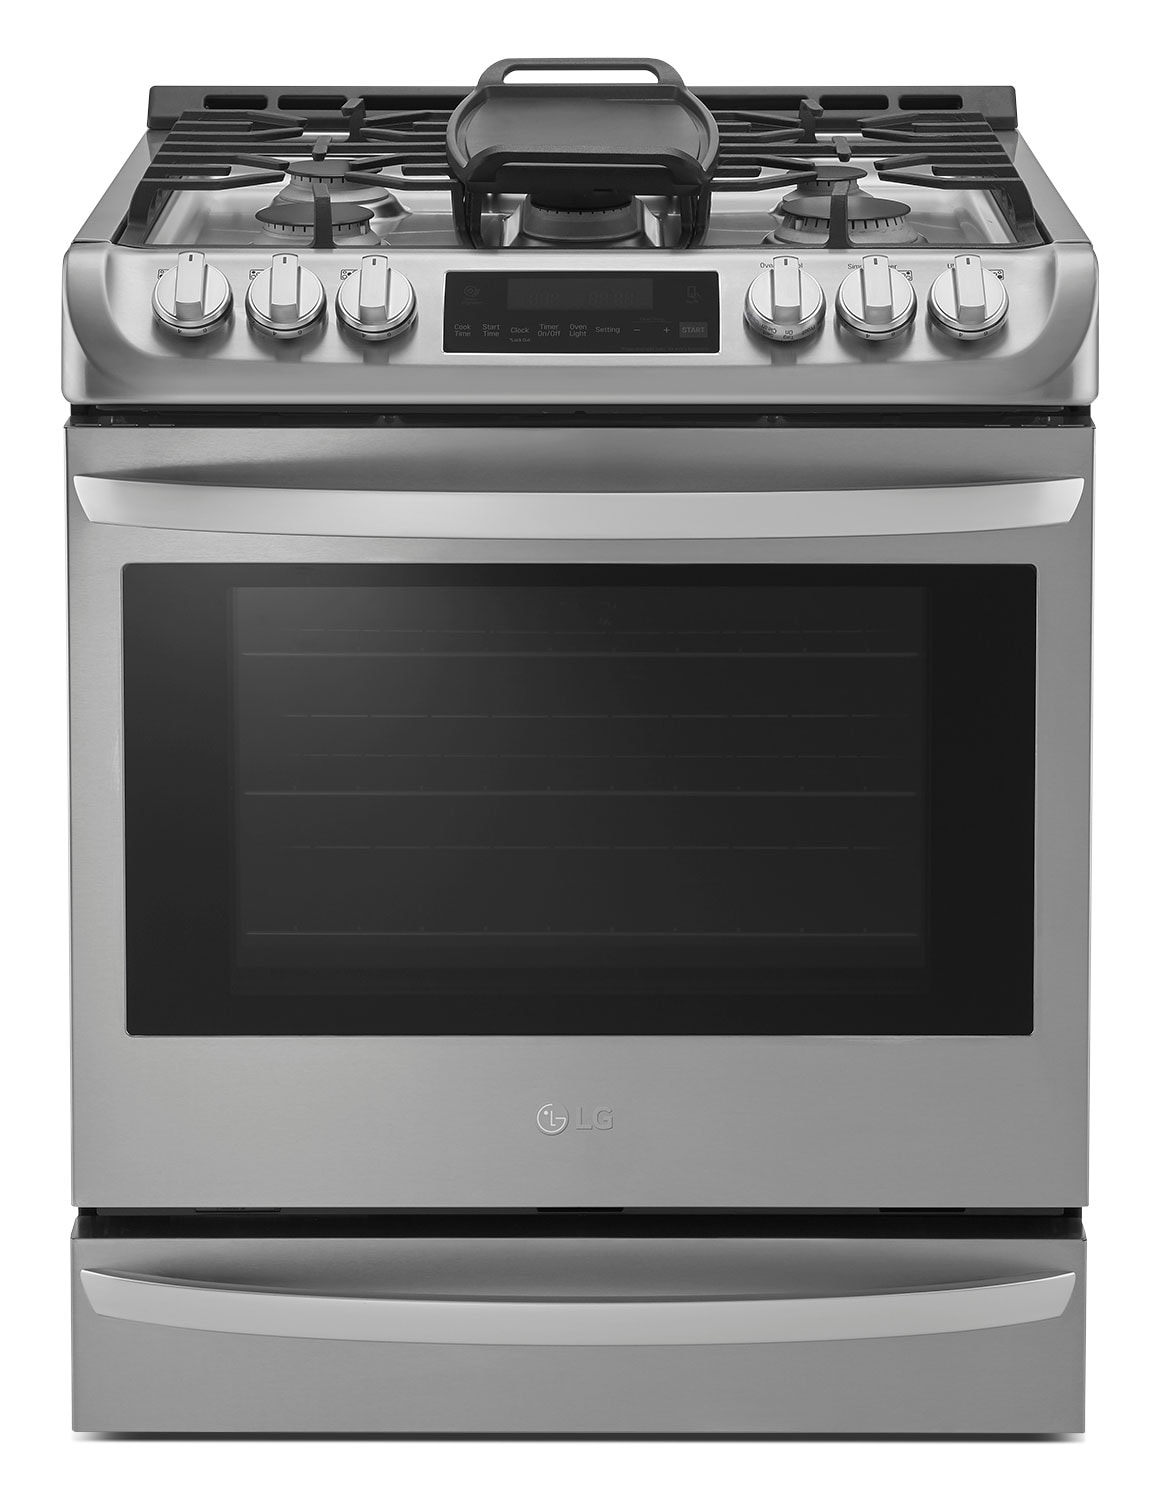 LG 6.3 Cu. Ft. Slide-In Gas Range with Probake Convection™ – LSG5513ST